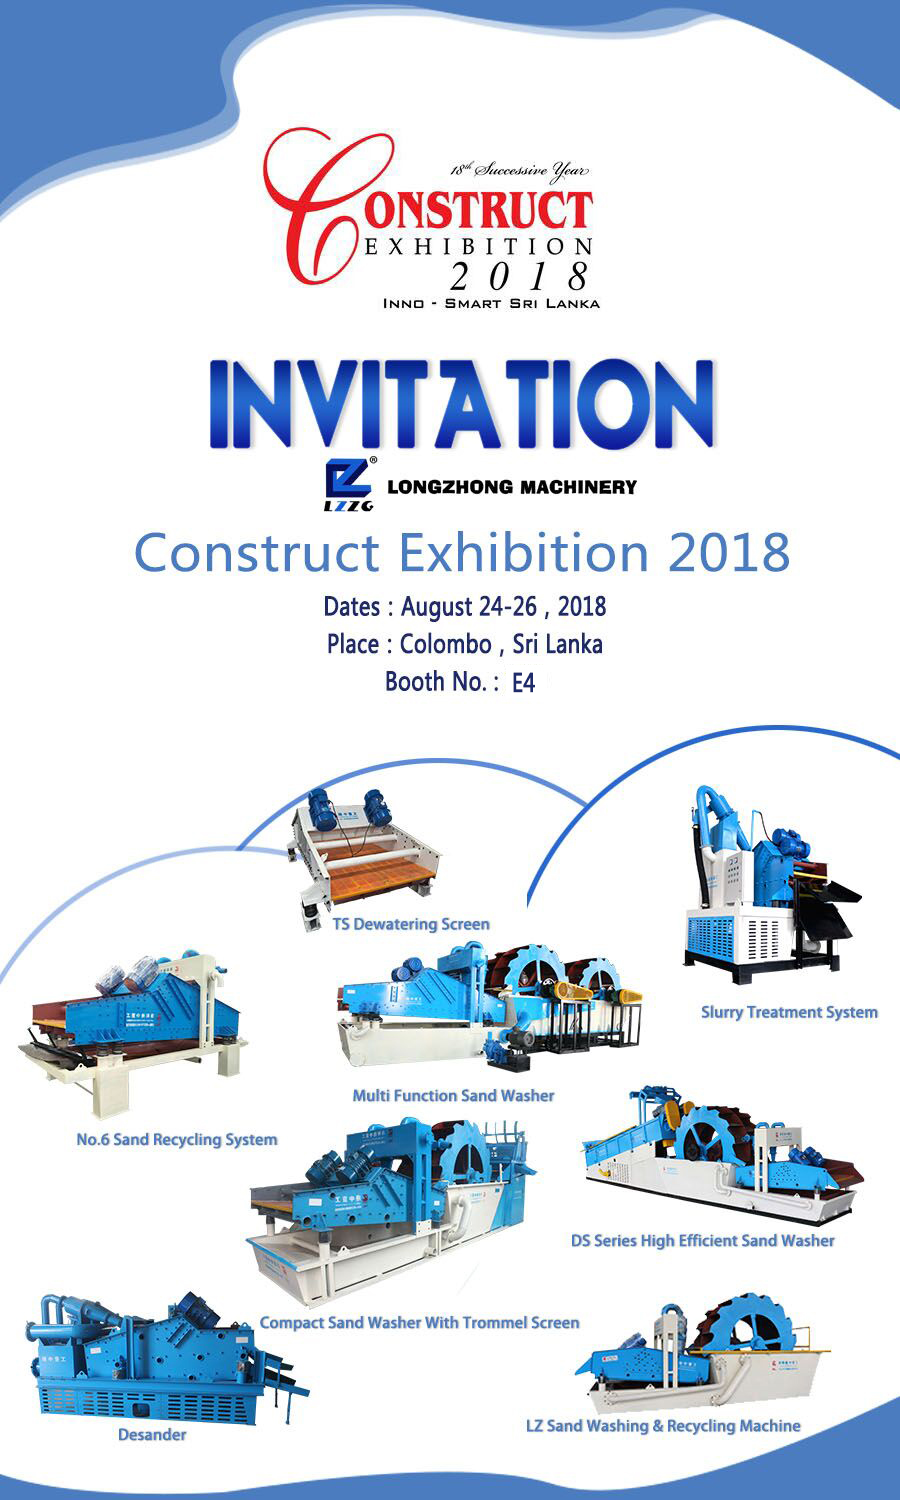 Construct Exhibition 2018 in Sri lanka